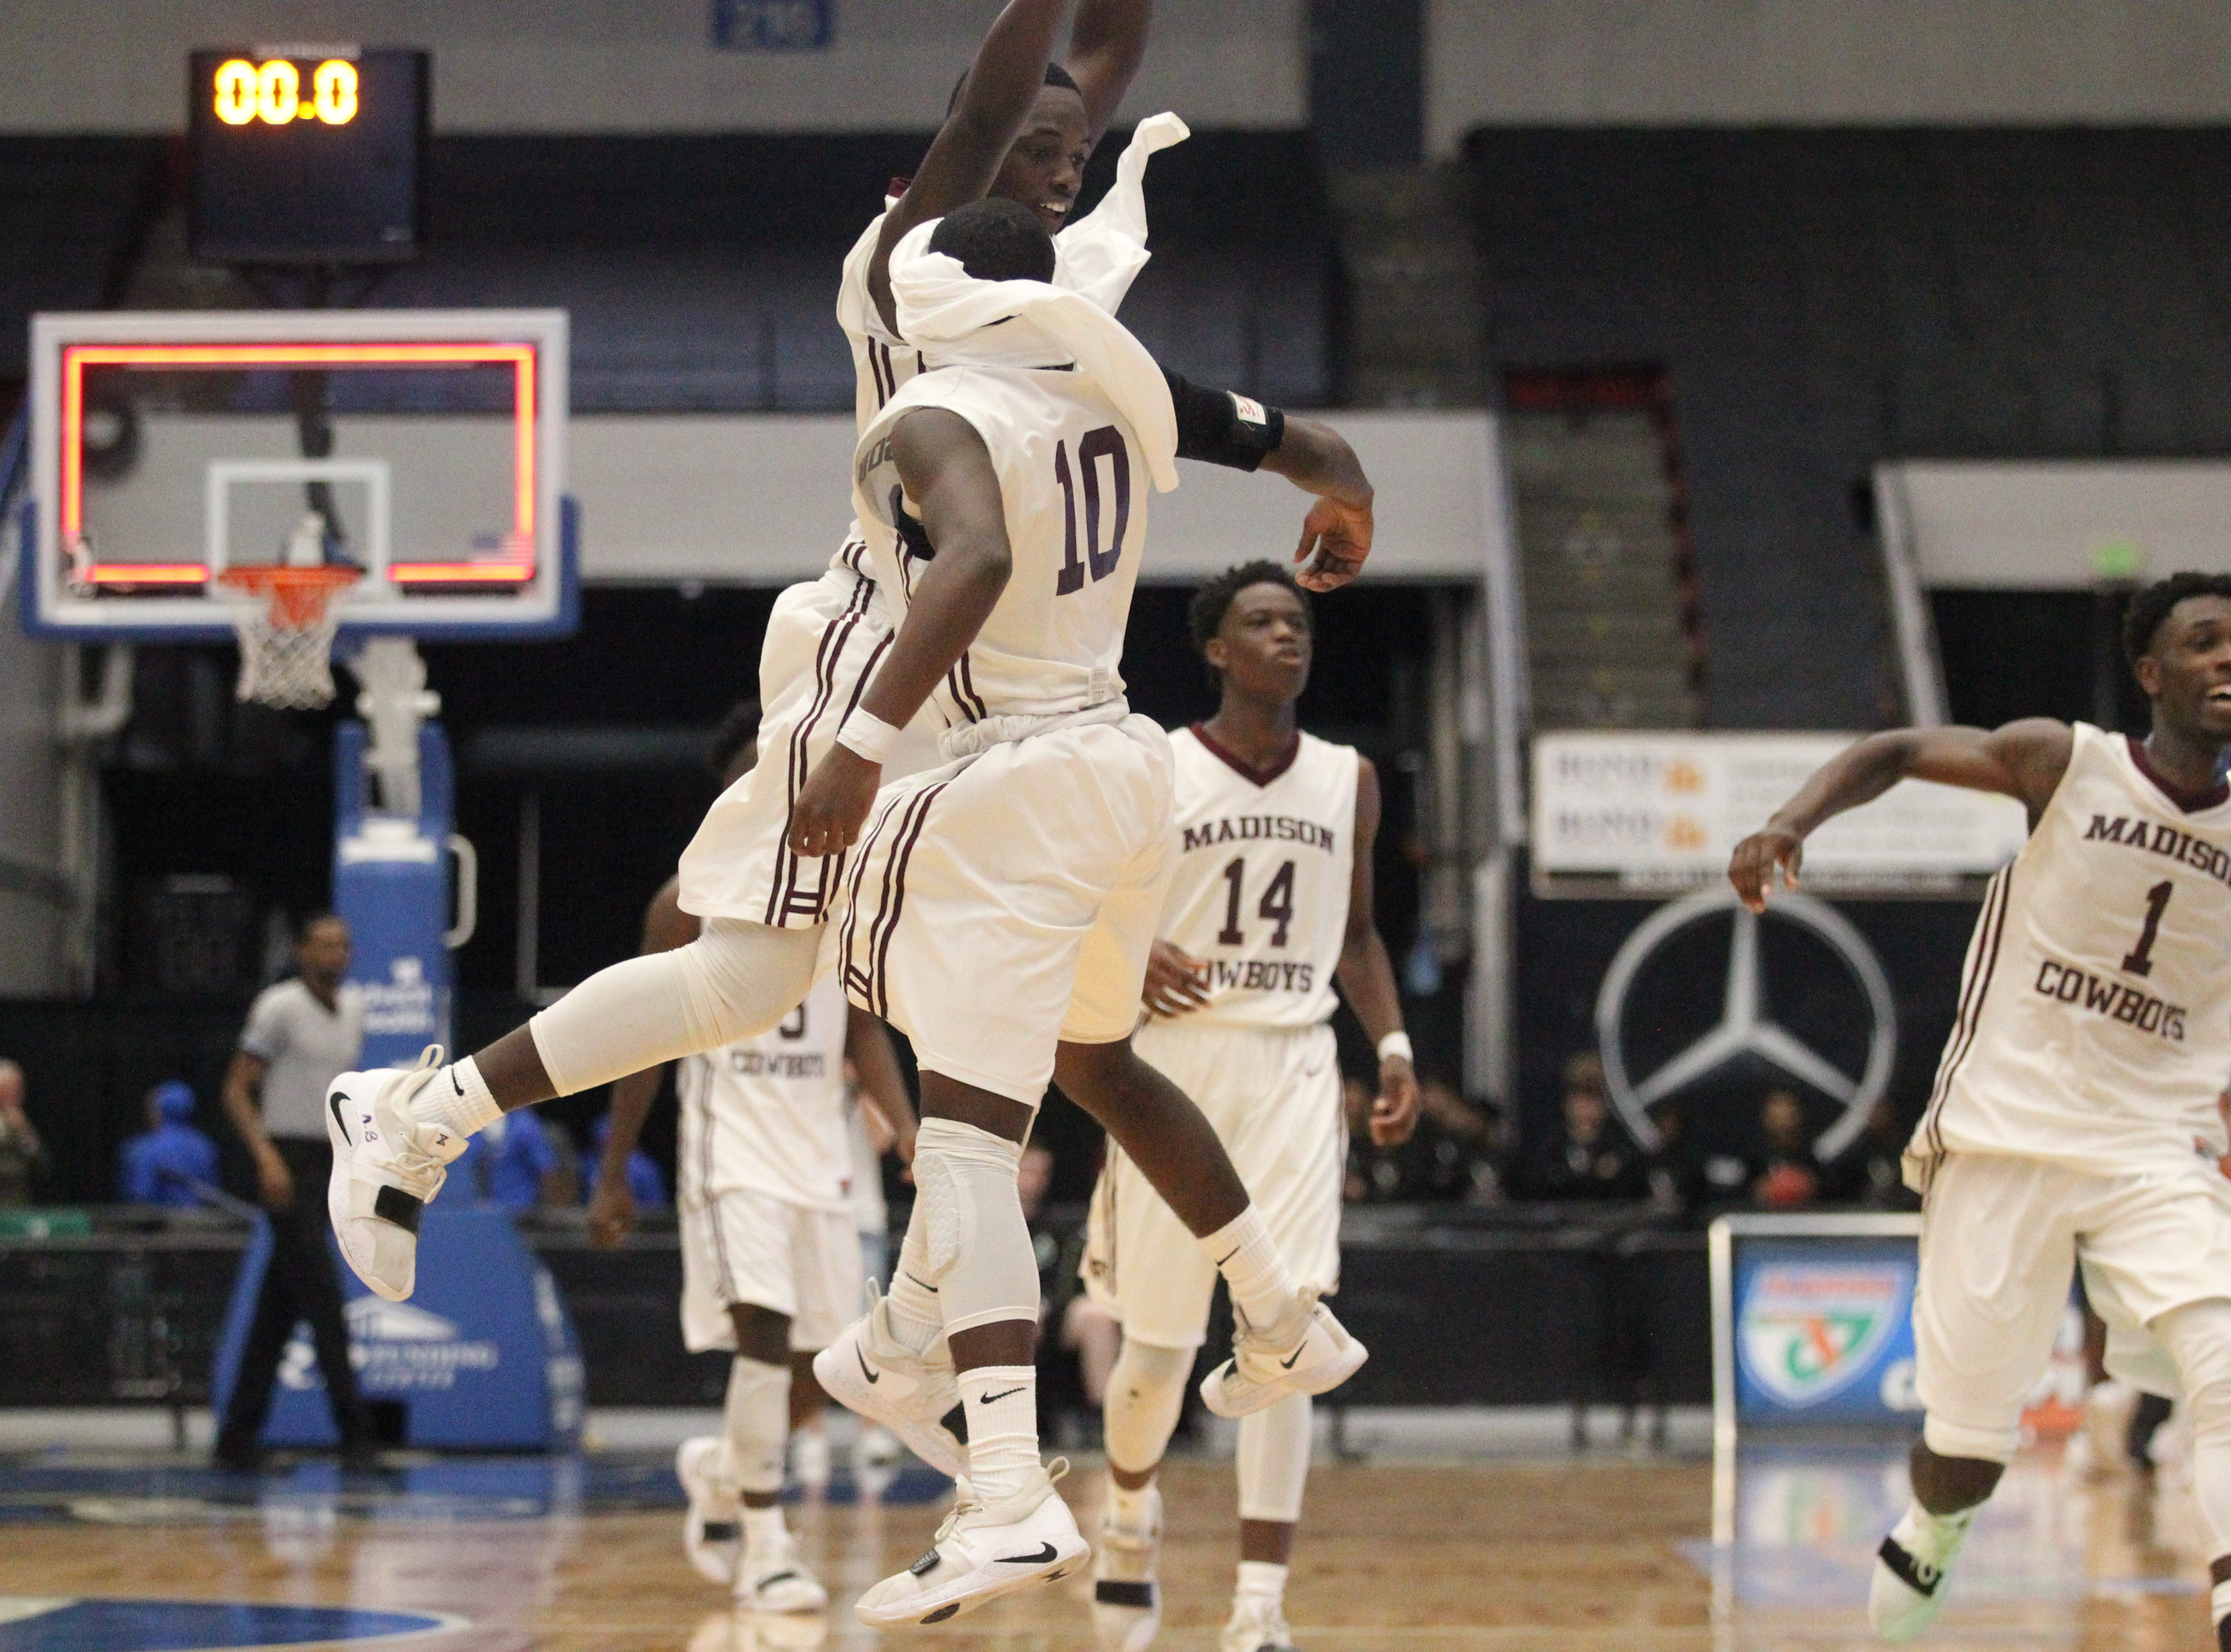 Madison County's Demarvion Brown  and Kelivon Oliver (10) chest bump after the Cowboys beat Paxton 63-51 during a Class 1A state semifinal game at the RP Funding Center in Lakeland on March 4, 2019.